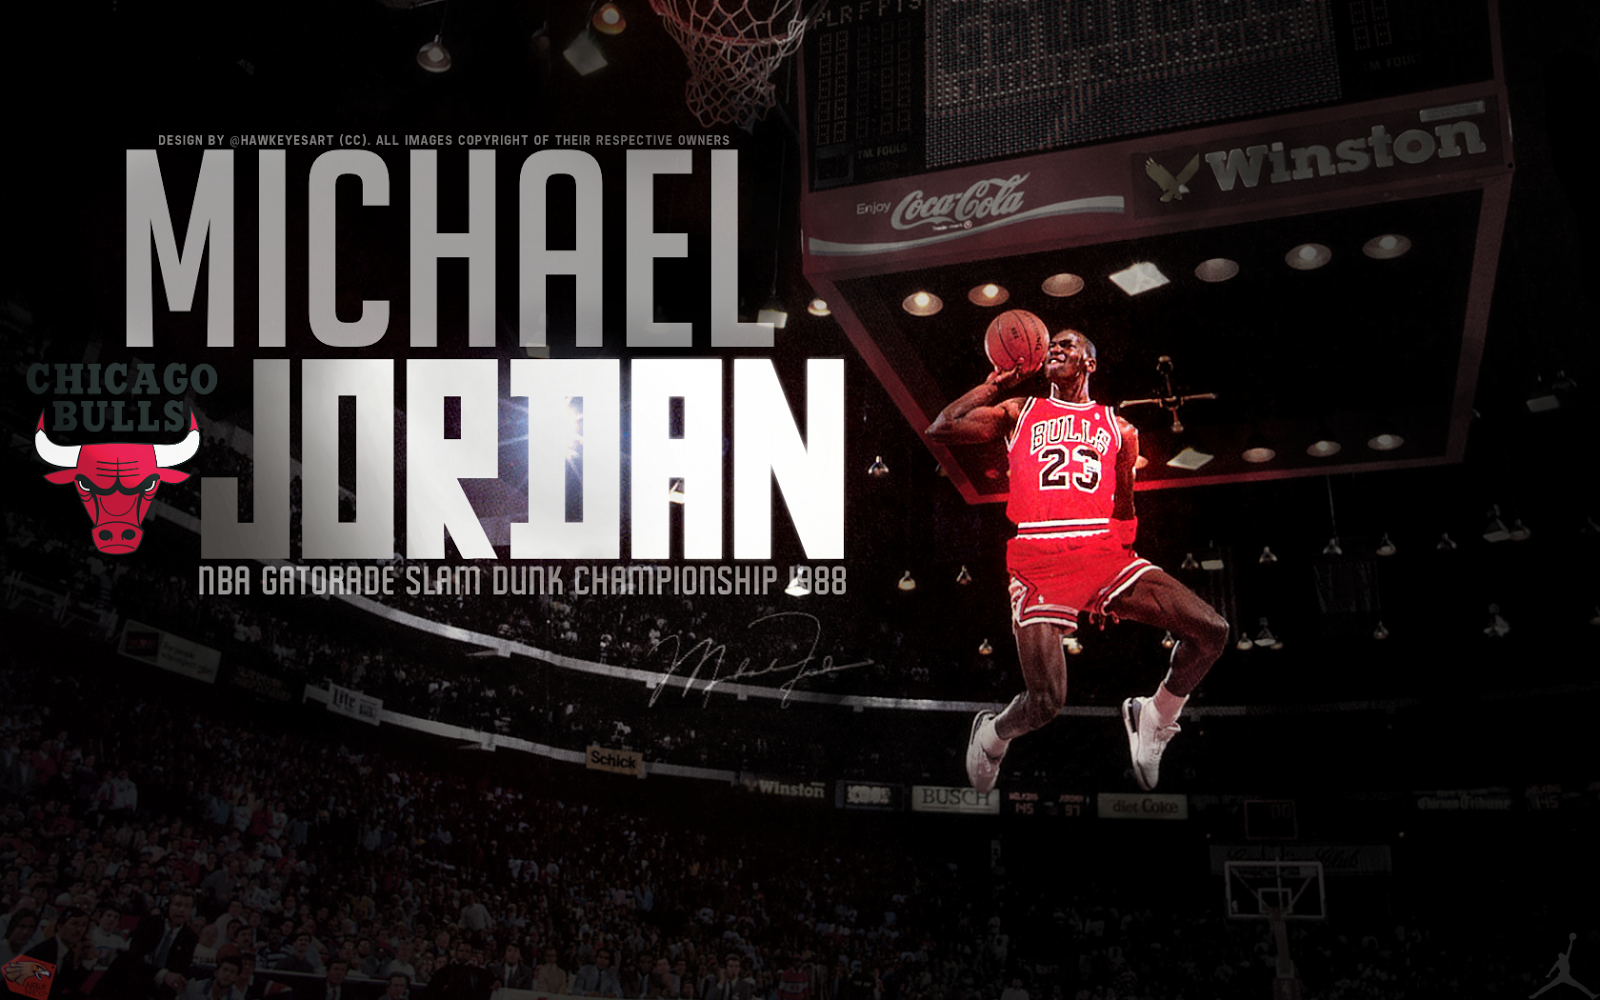 Michael Jordan Moving Wallpaper